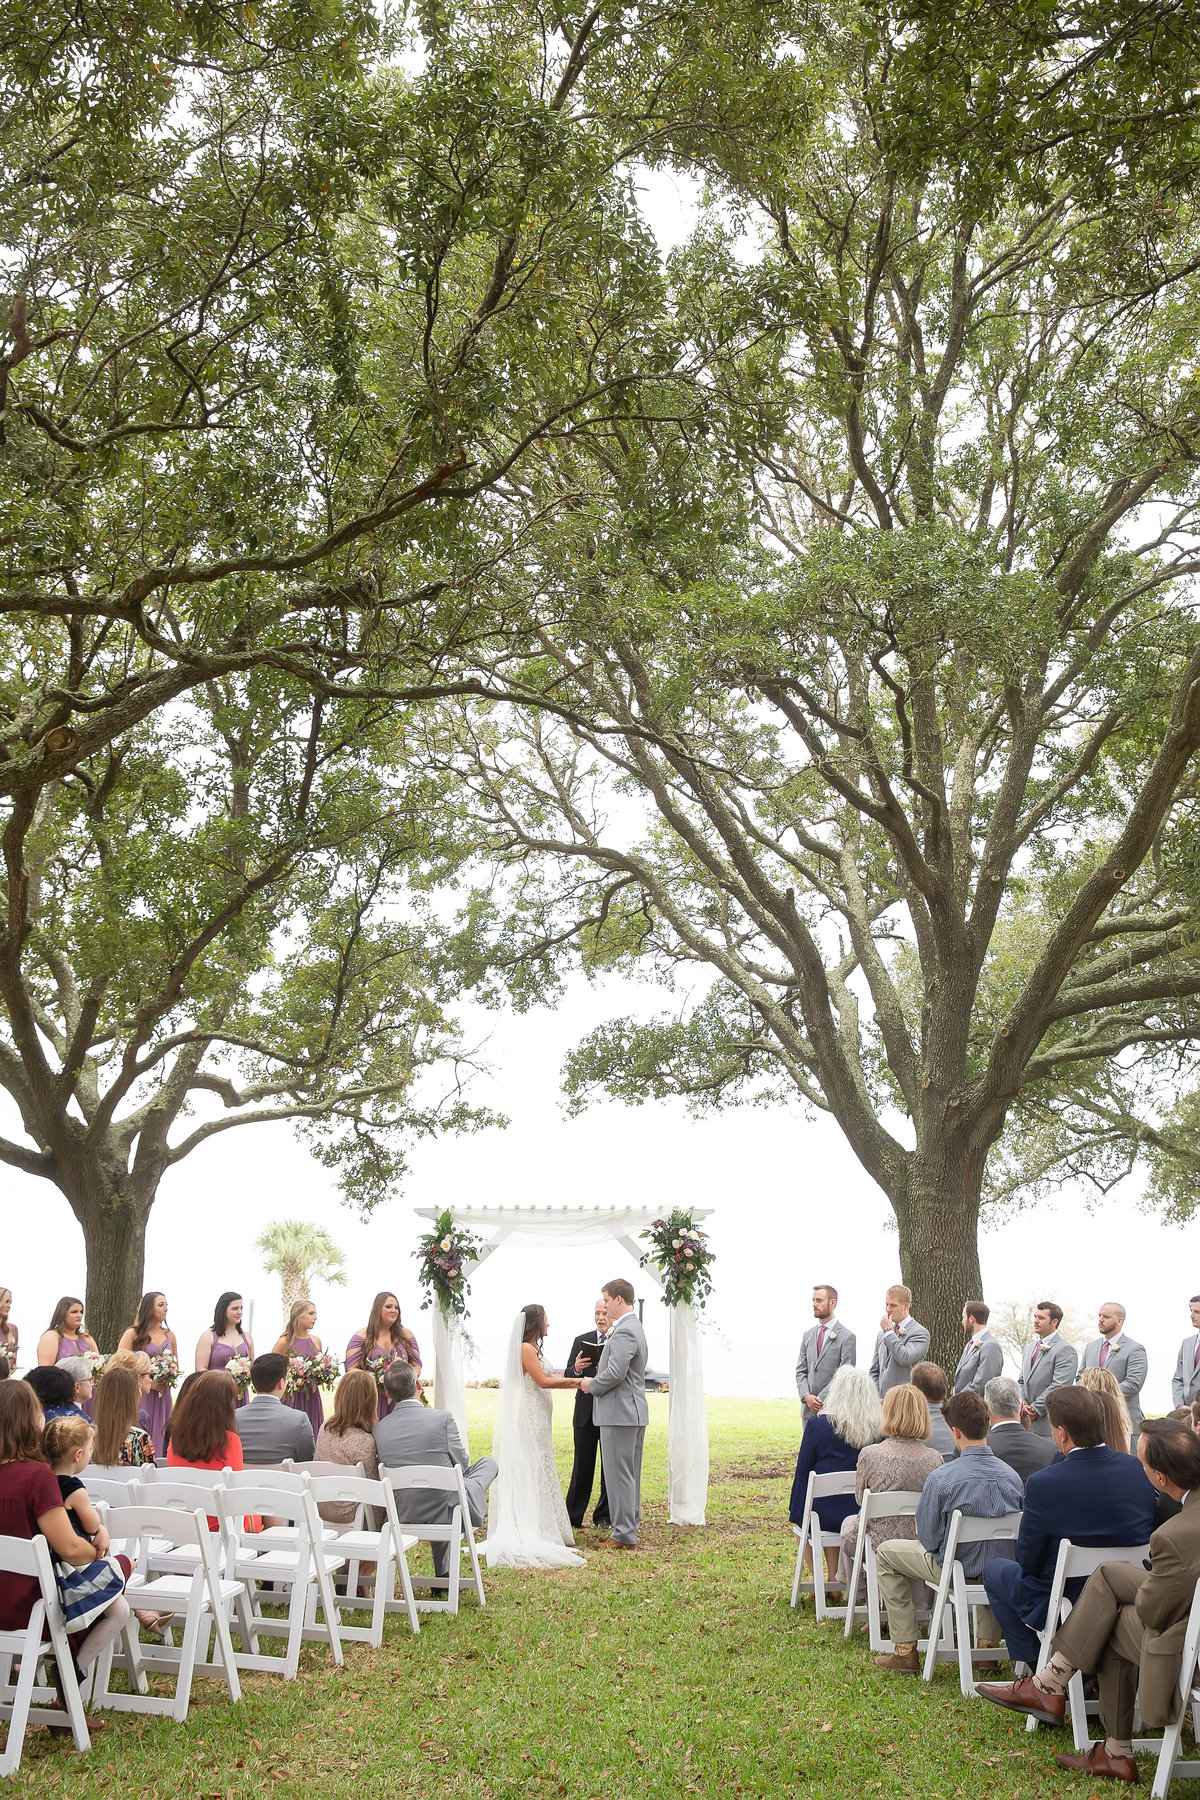 Kayce-Stork-Photography-Biloxi-Wedding-Photographers160